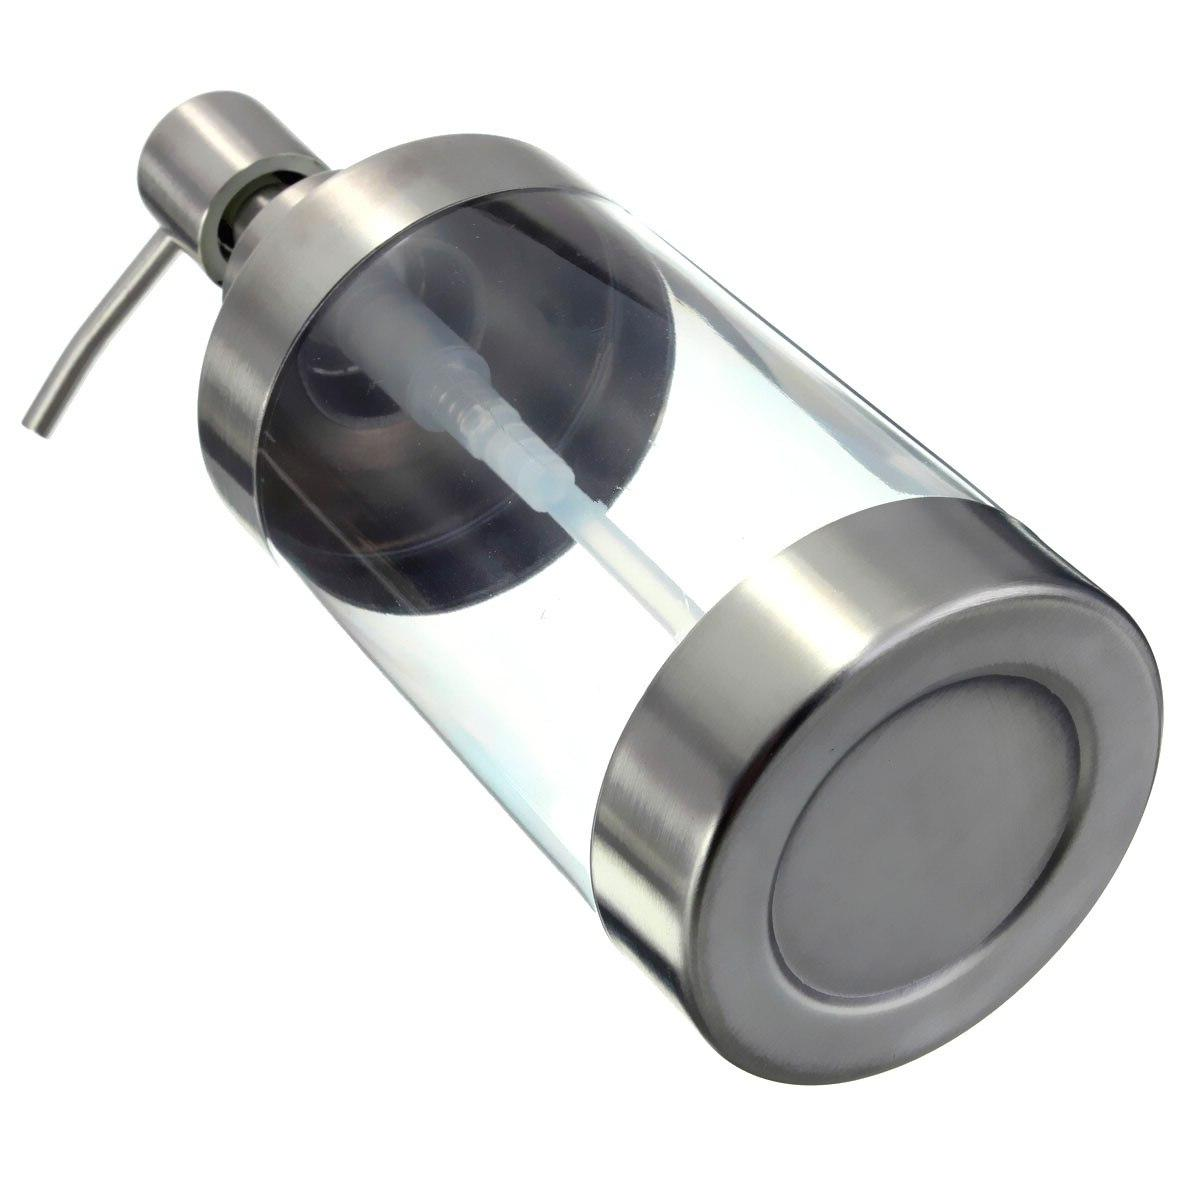 Transparent <font><b>Hand</b></font> Dispenser Lotion Bottle Stainless Steel